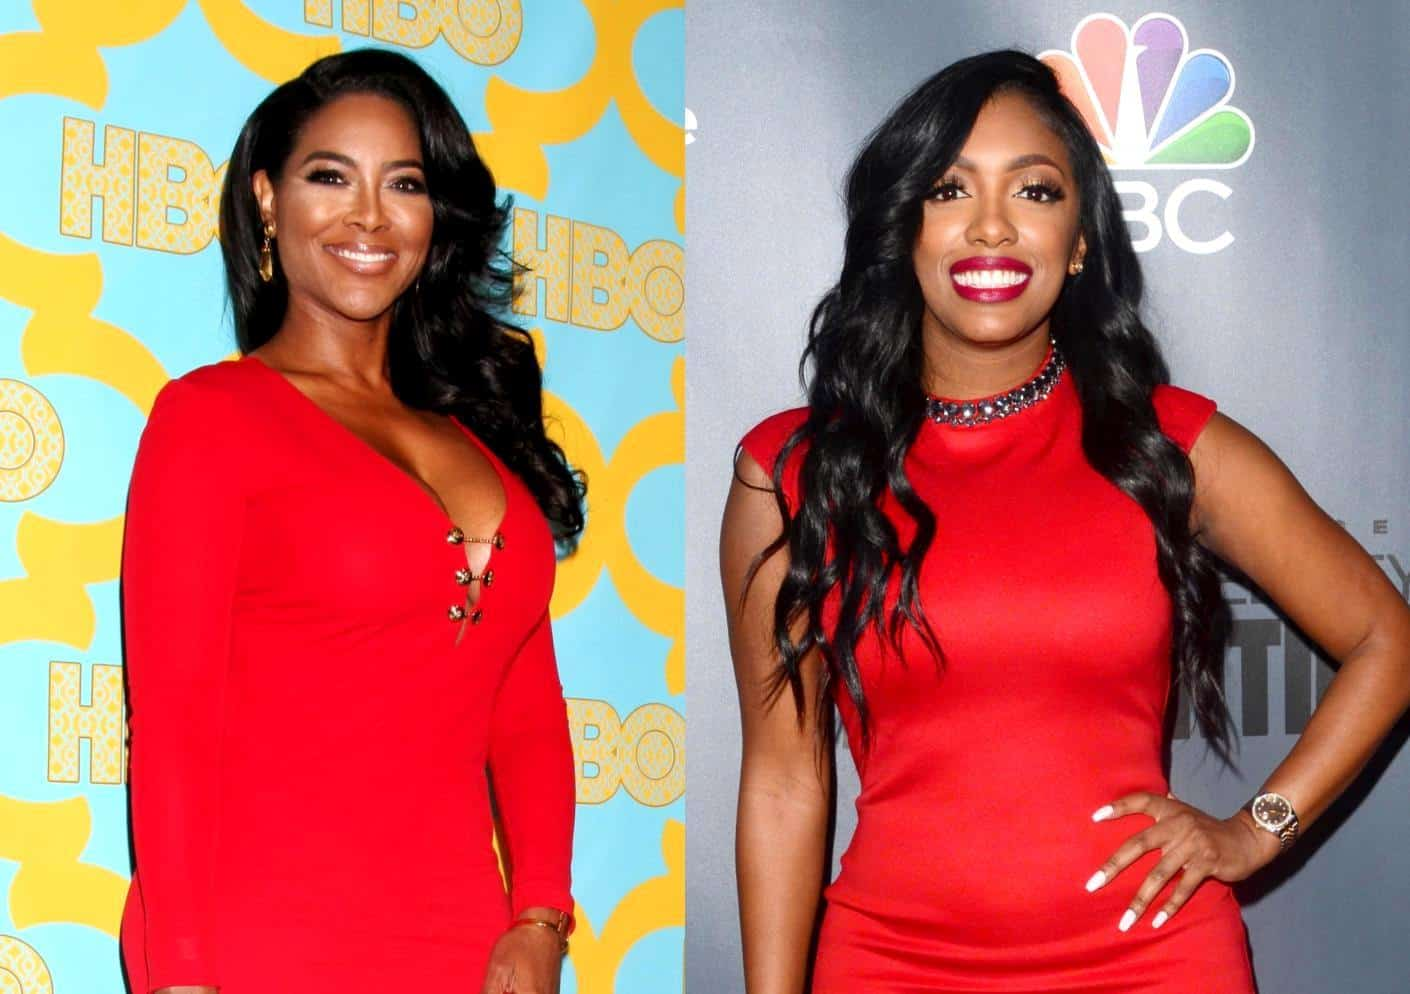 RHOA Kenya Moore and Porsha Williams